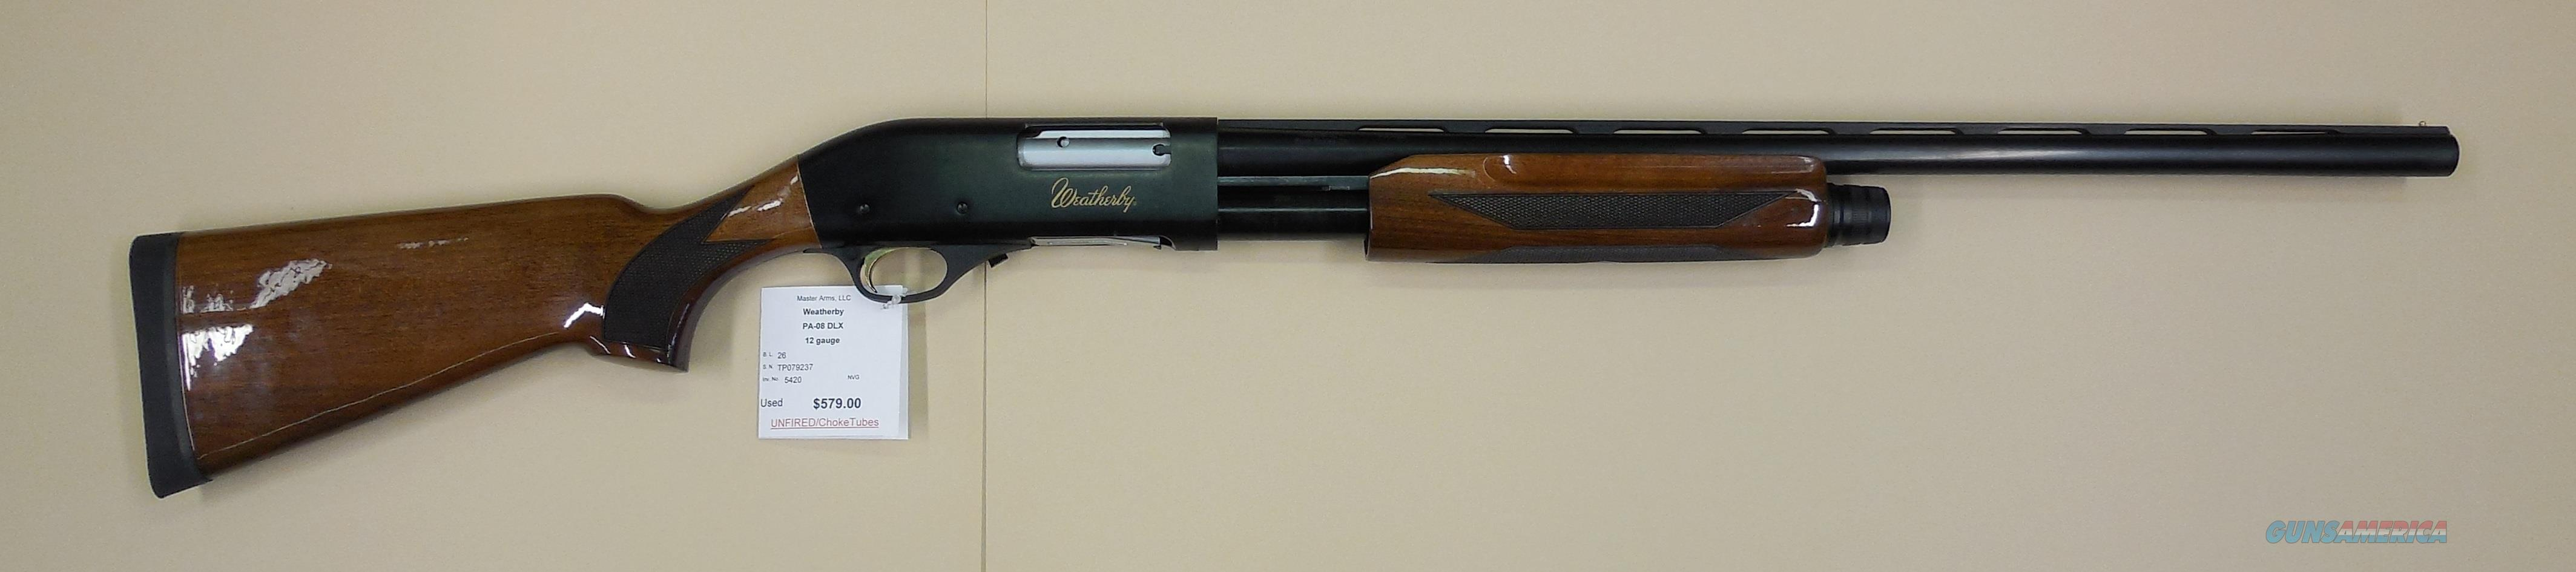 WEATHERBY PA-08 DELUXE  Guns > Shotguns > Weatherby Shotguns > Trap/Skeet > Single Barrel